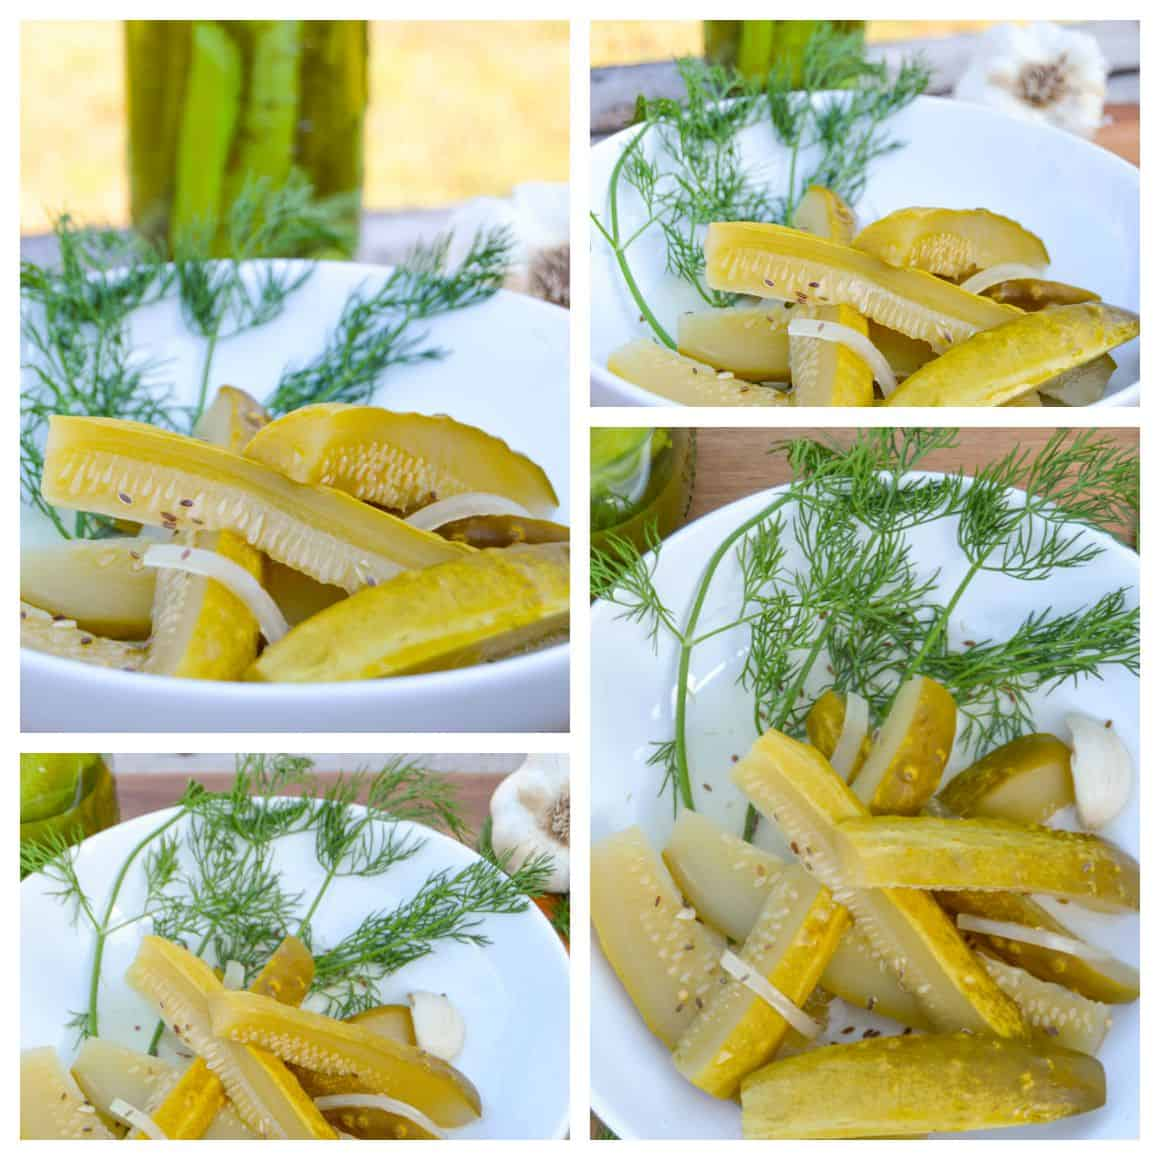 Homemade Deli Style Dill Pickles Collage